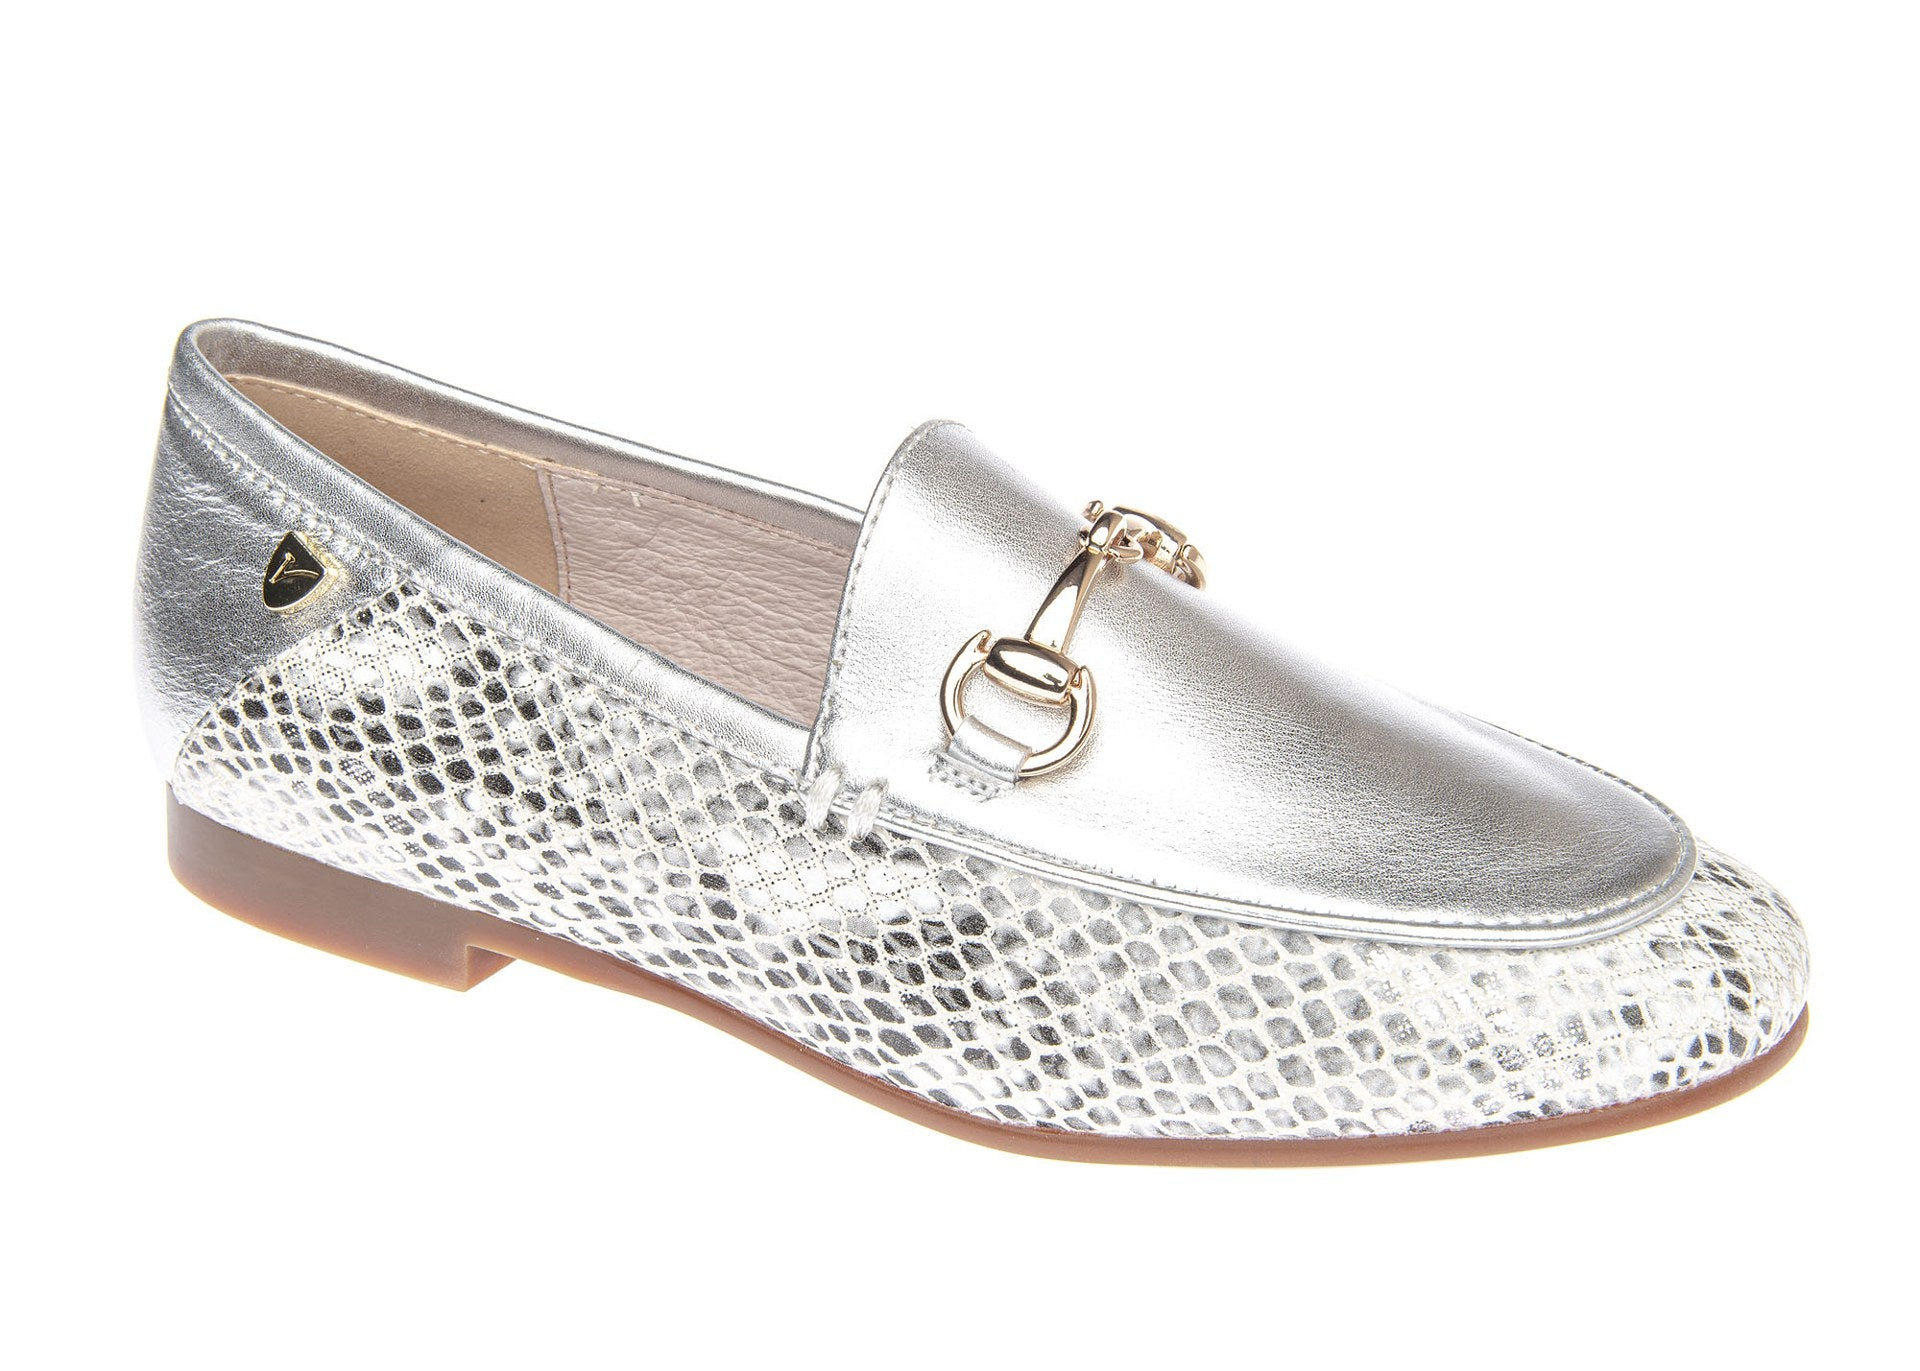 Venettini Silver/Snakeskin Loafer with Chain